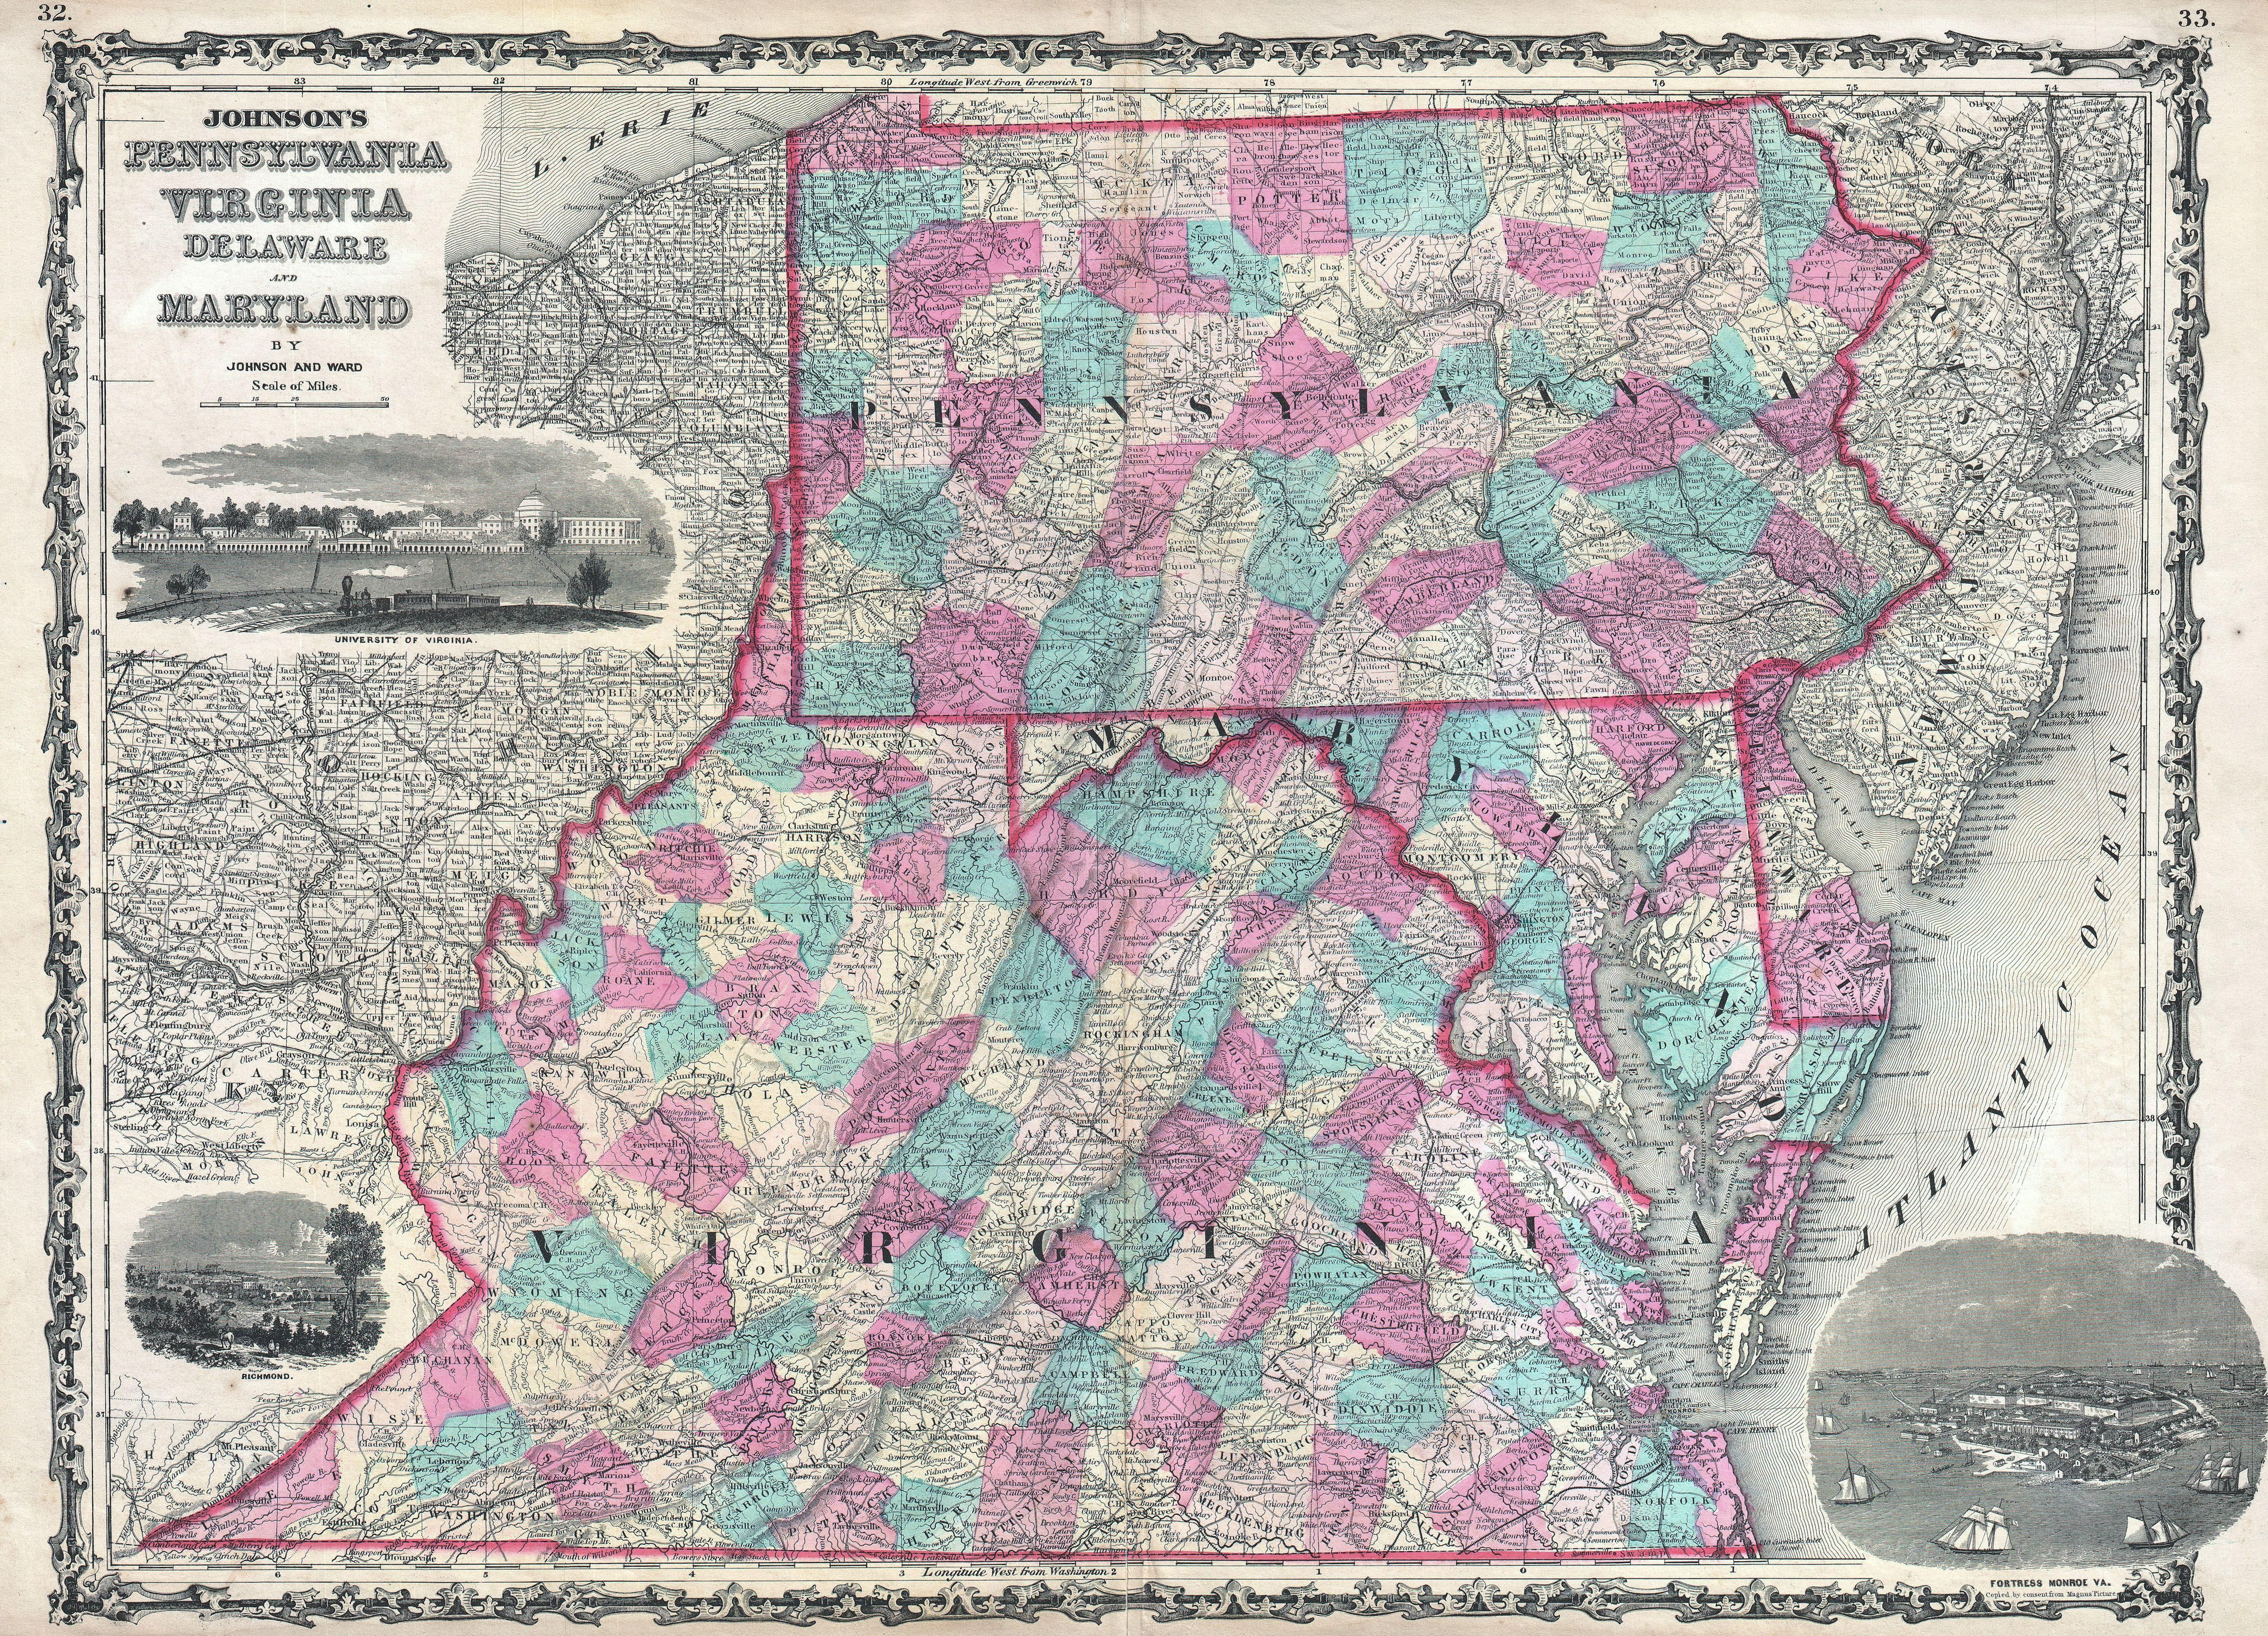 map of maryland pennsylvania and west virginia Virginia In 1862 Before West Virginia Separated Map Virginia map of maryland pennsylvania and west virginia